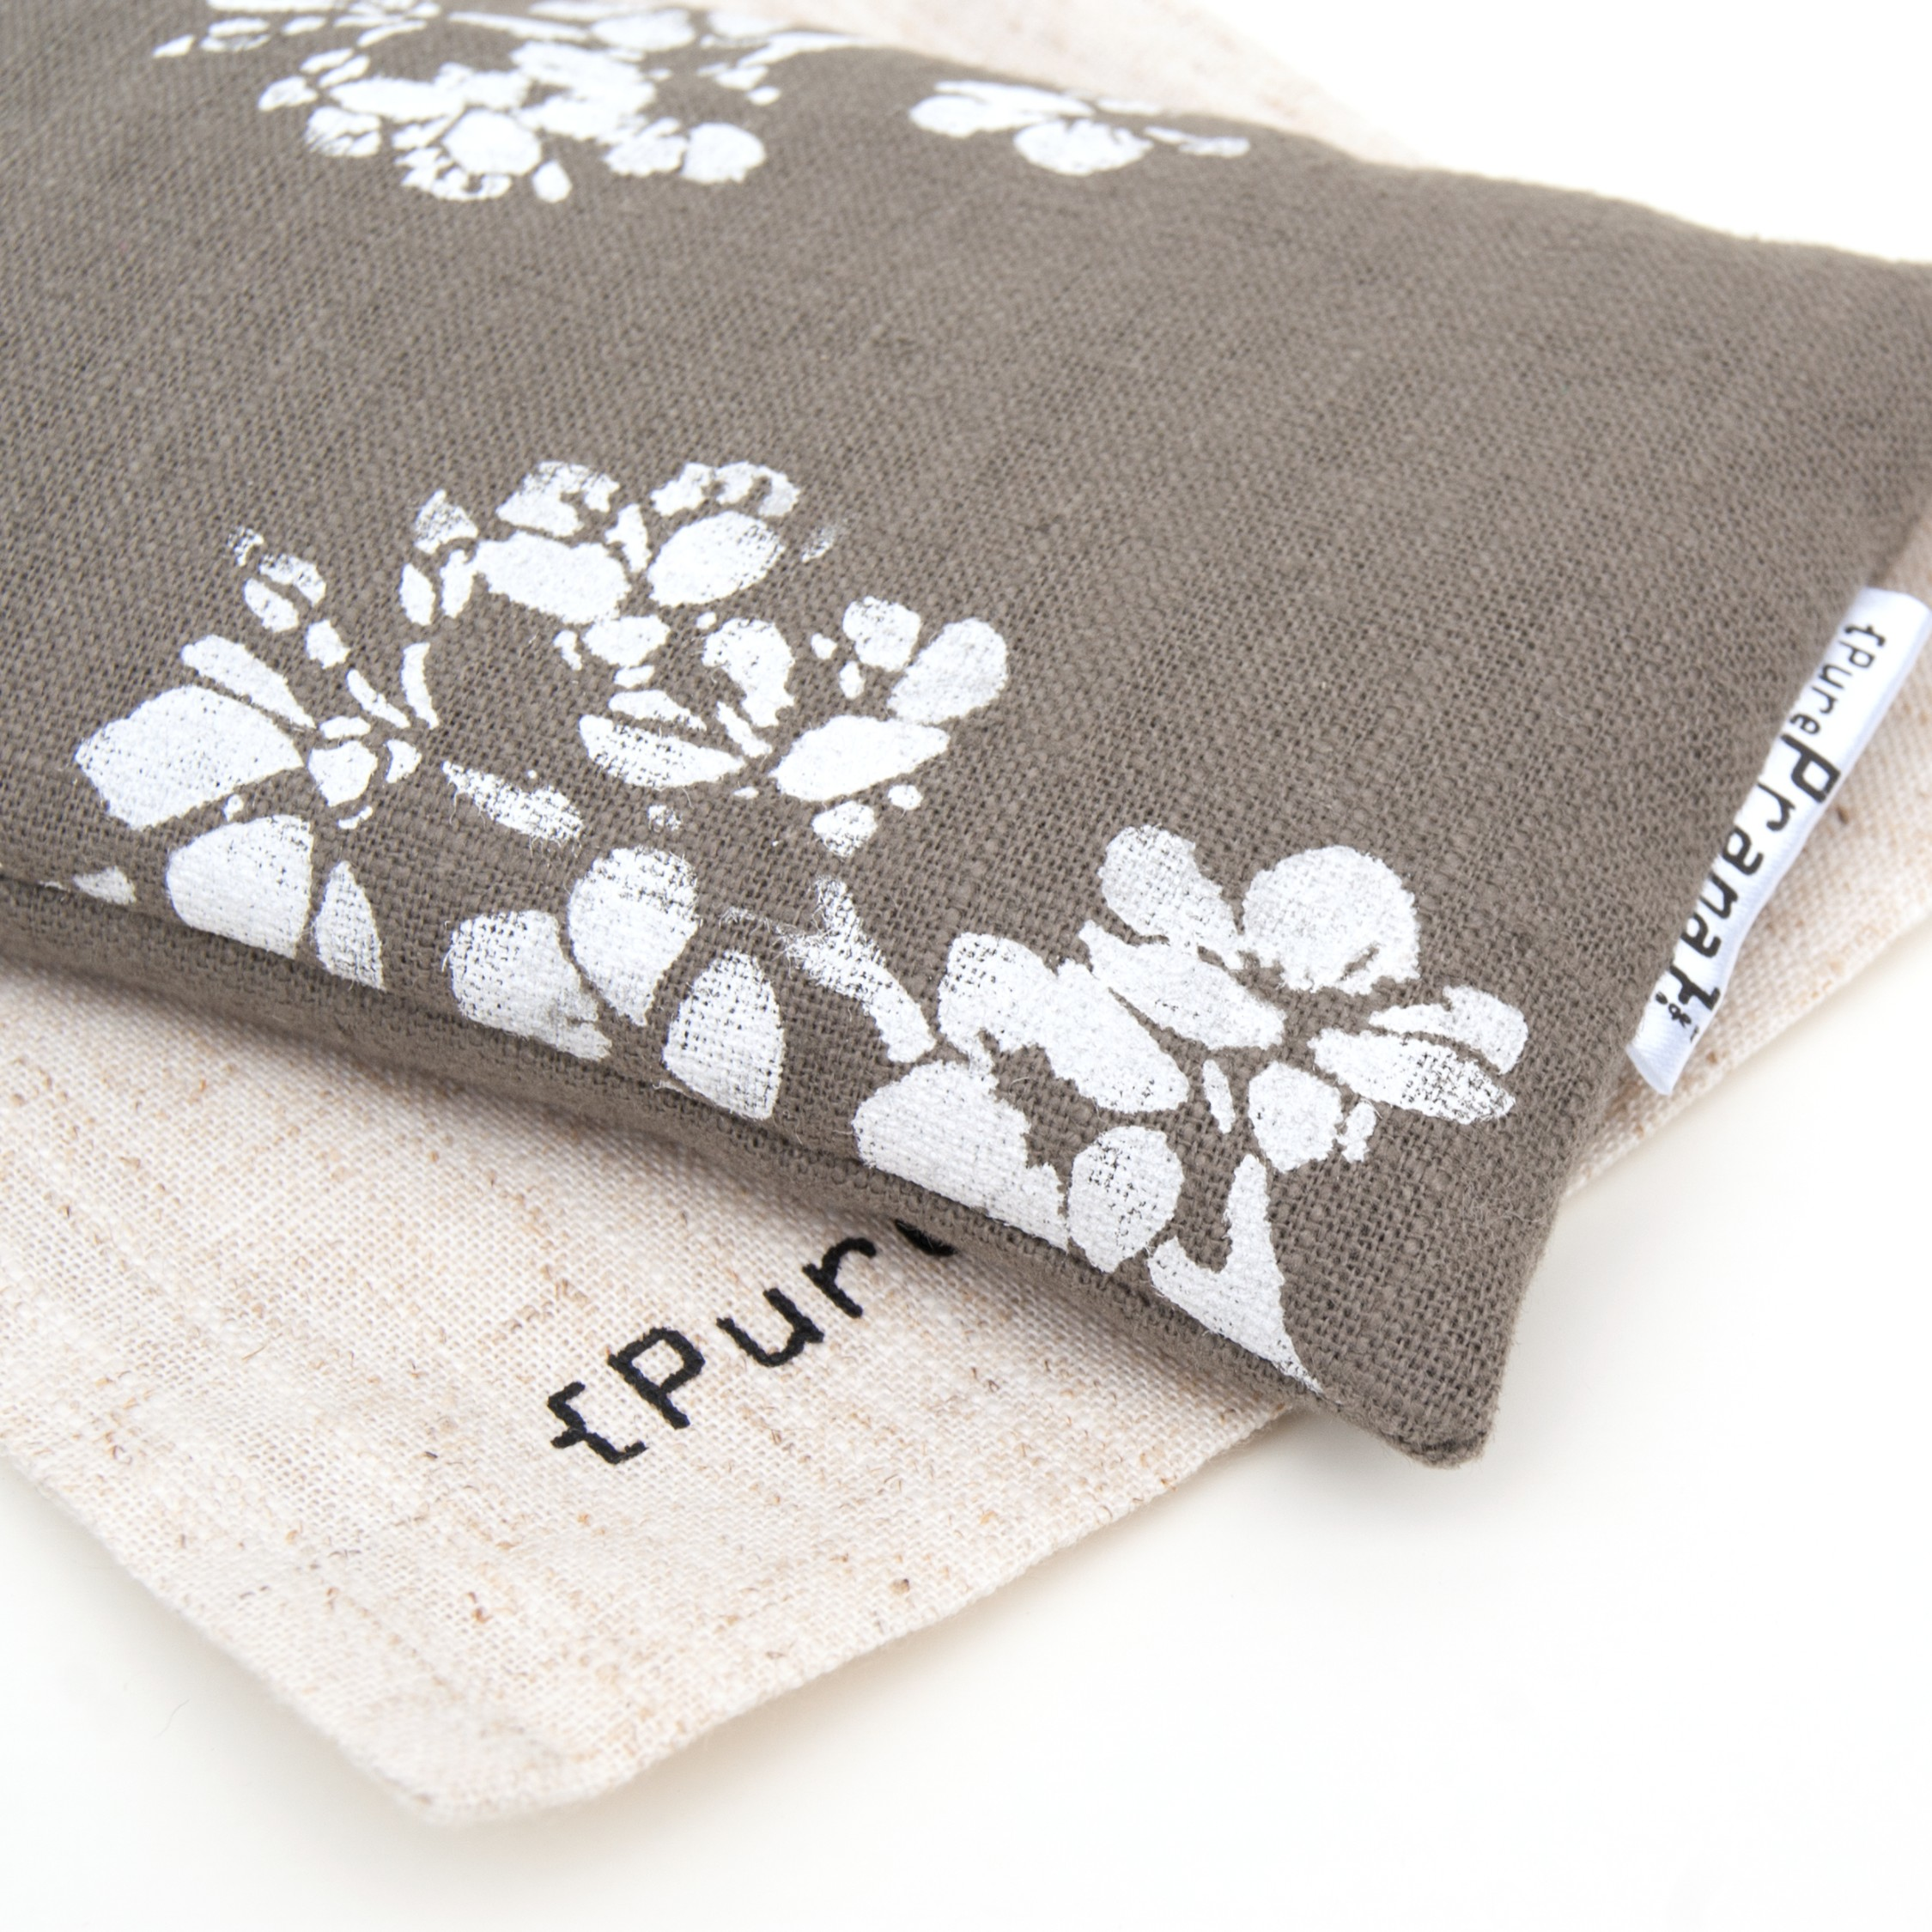 Cherry blossom print on an olive green eye pillow